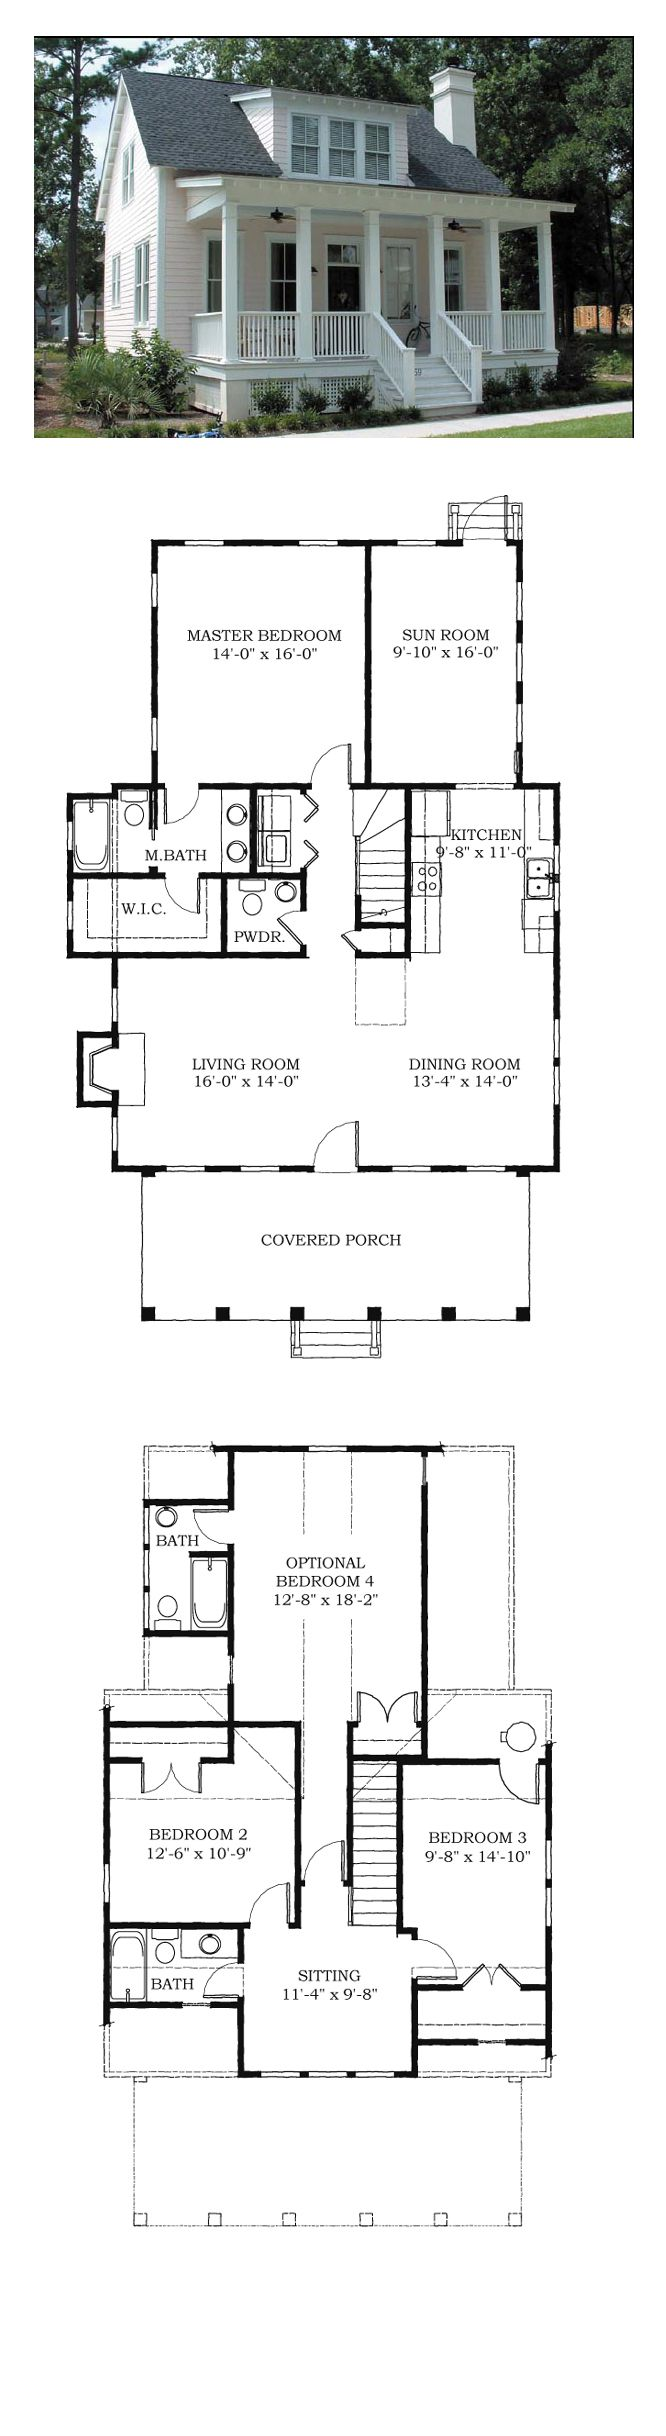 Best House Plans Ideas On Pinterest Craftsman Home Plans